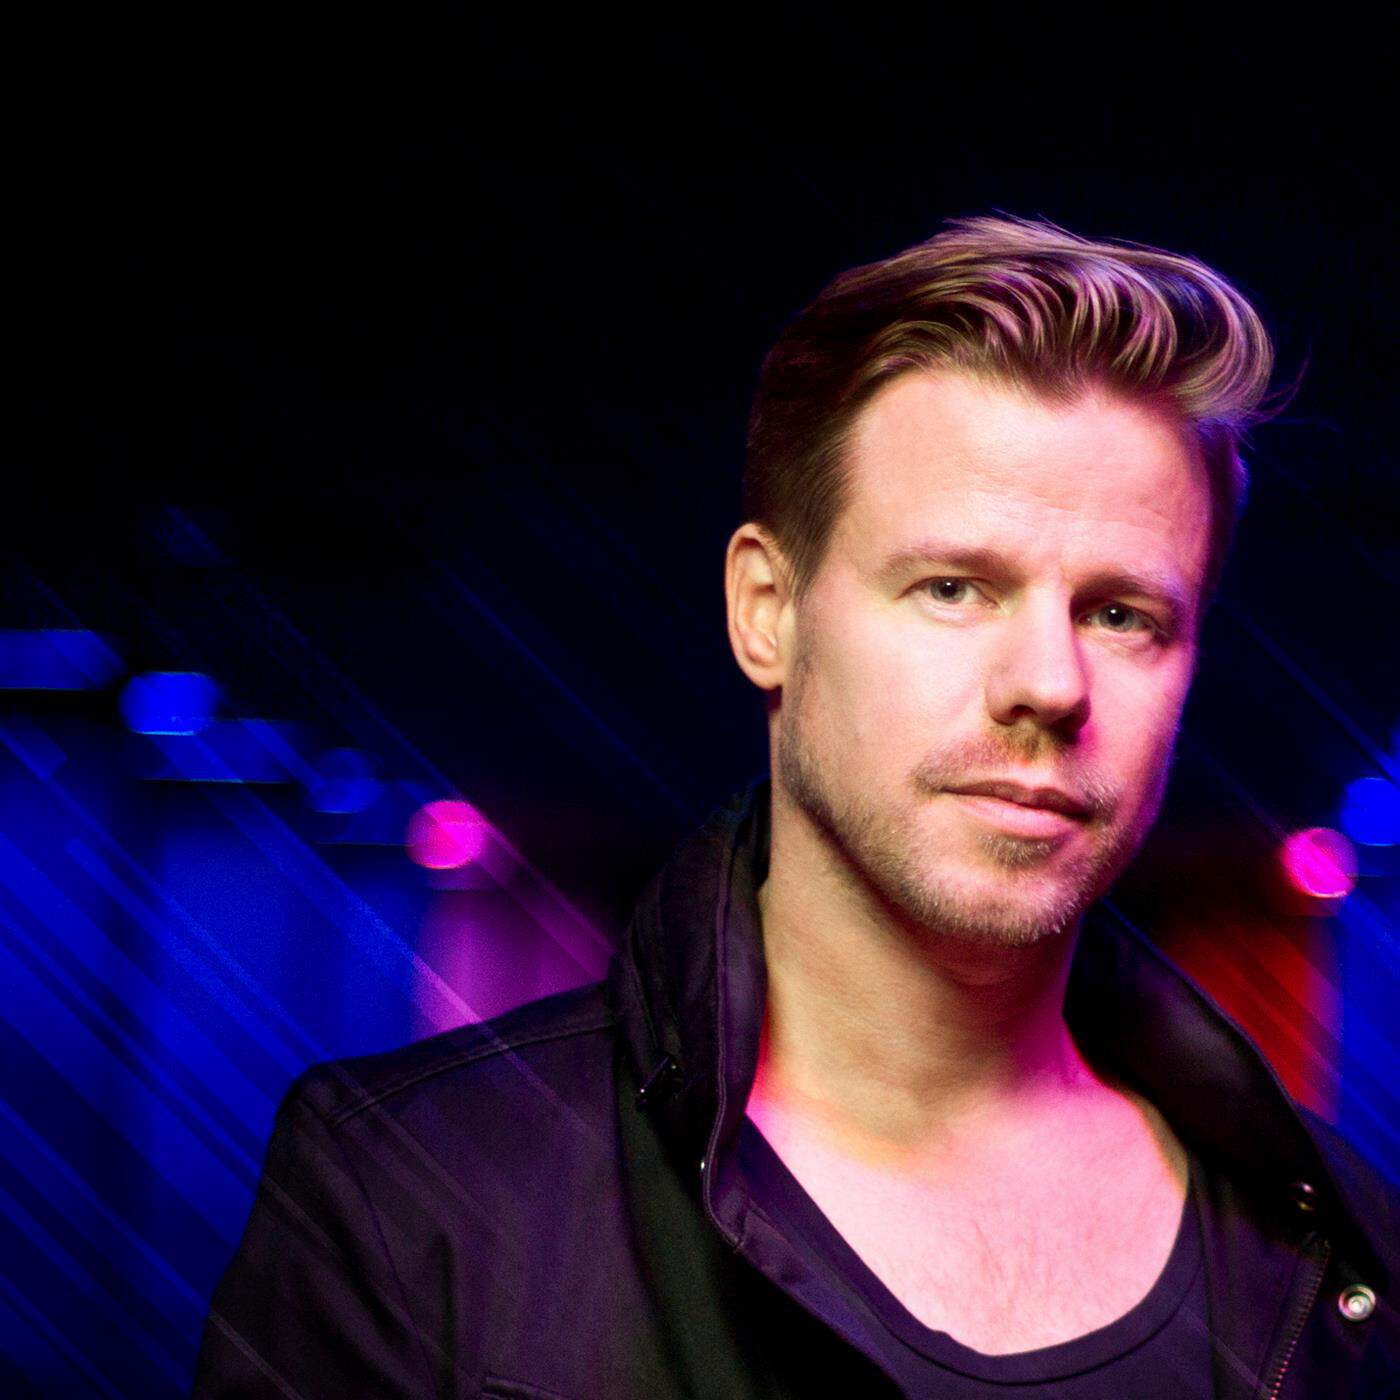 Ferry Corsten earned a  million dollar salary, leaving the net worth at 8 million in 2017